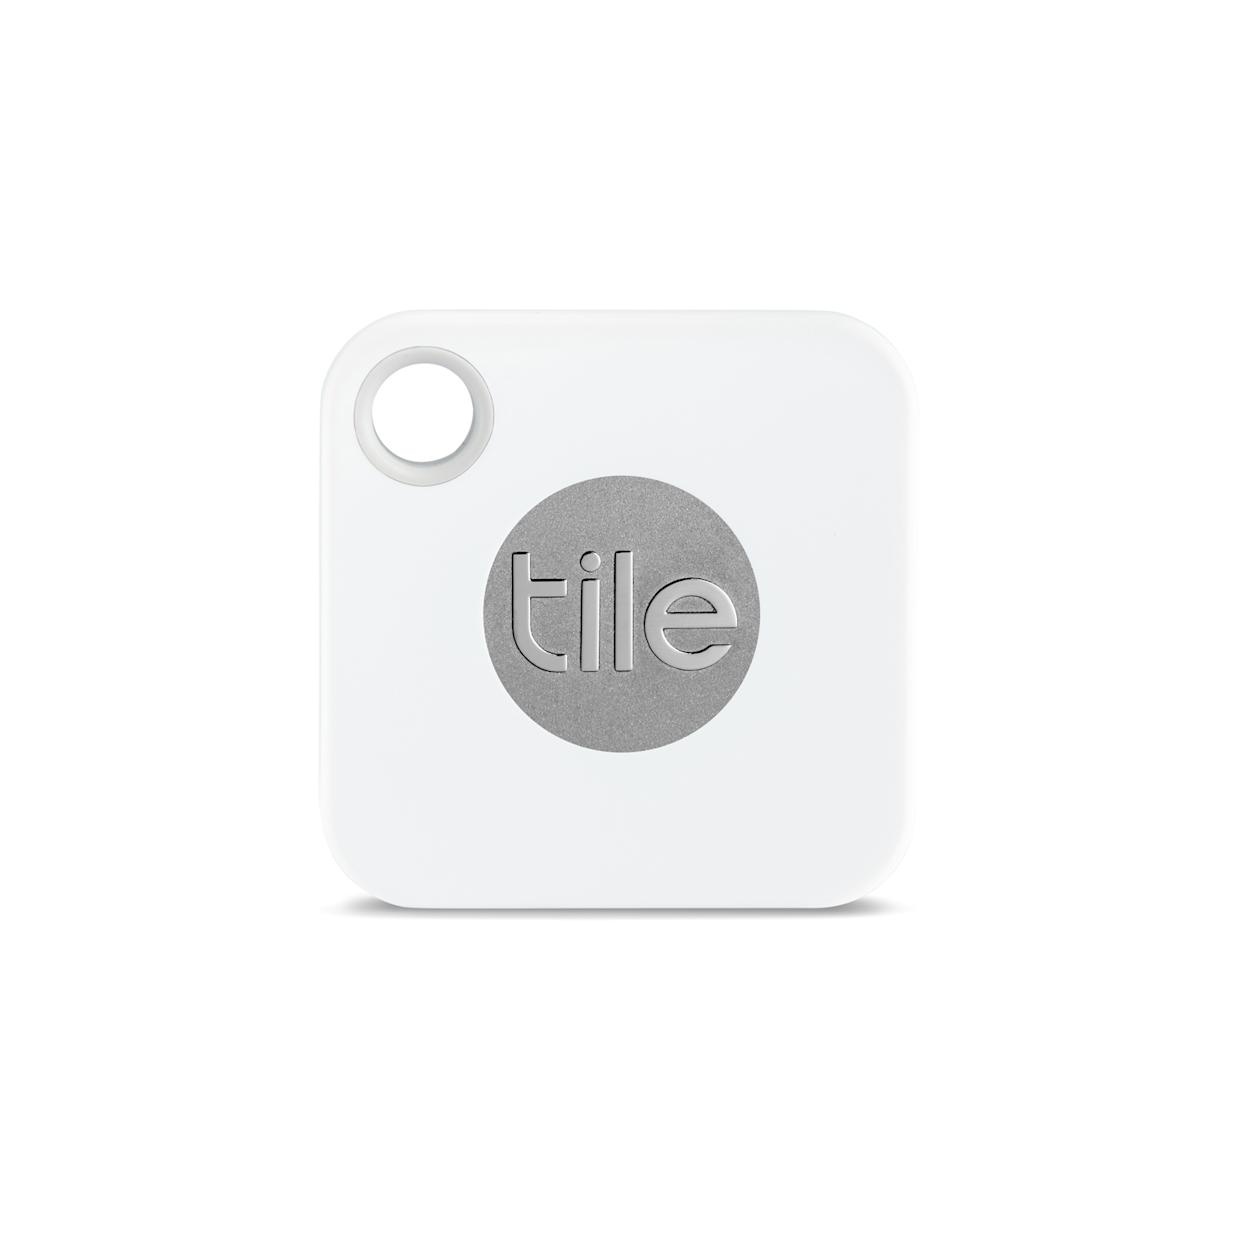 The Tile Mate should make losing your keys a thing of the past